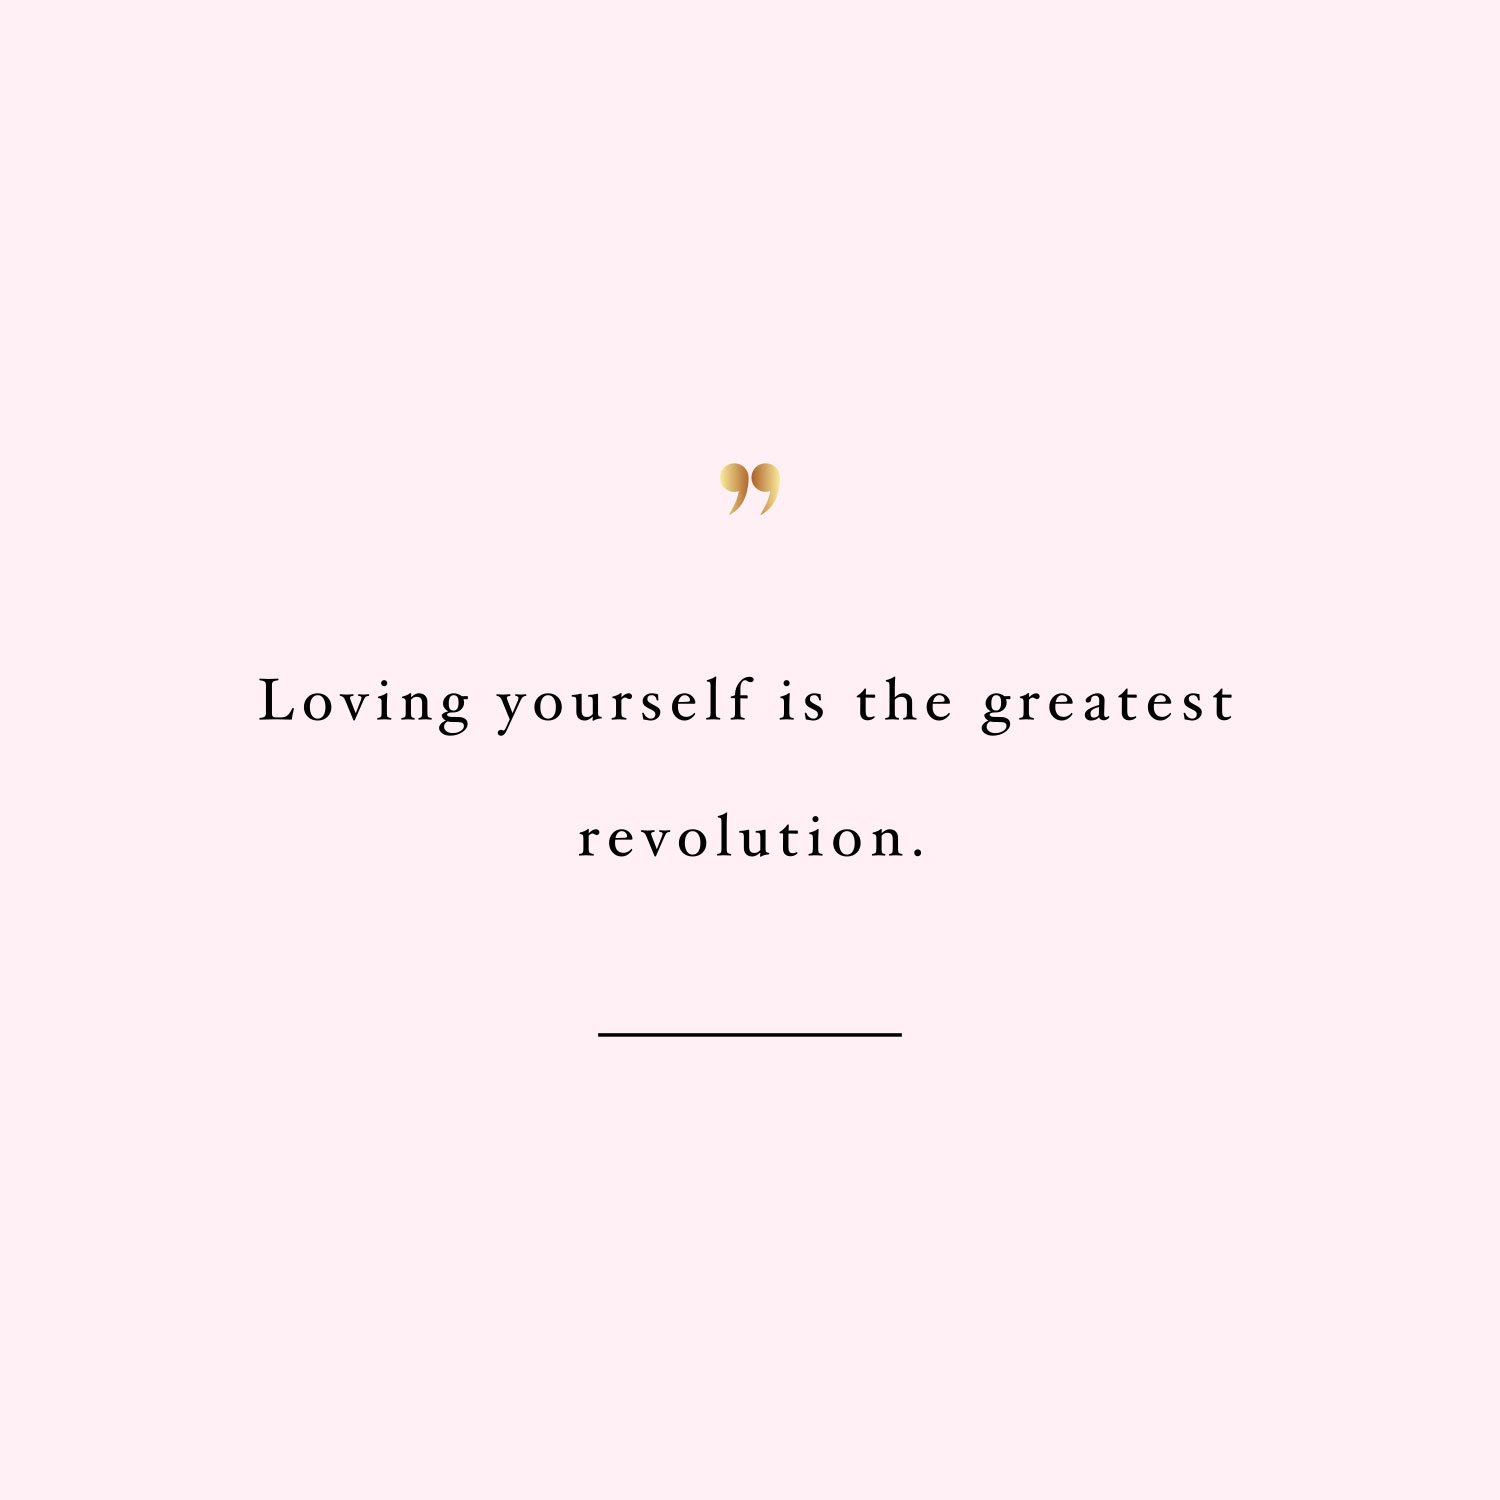 Loving Yourself Quote Loving Yourself Revolution  Healthy Lifestyle Motivation